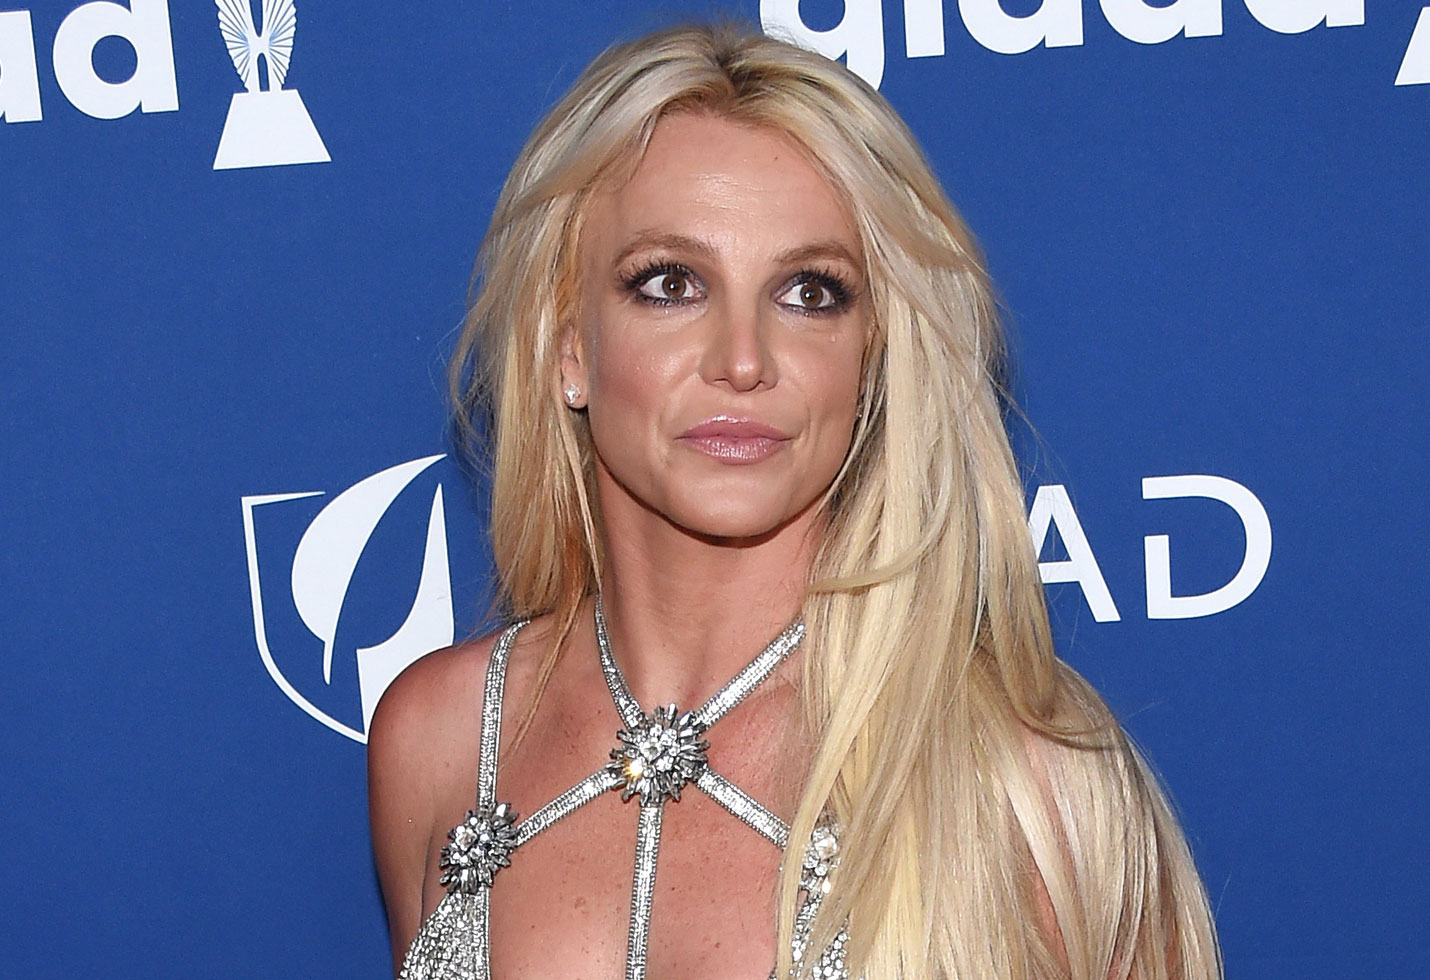 Britney spears mental health facility dad jamie health crisis